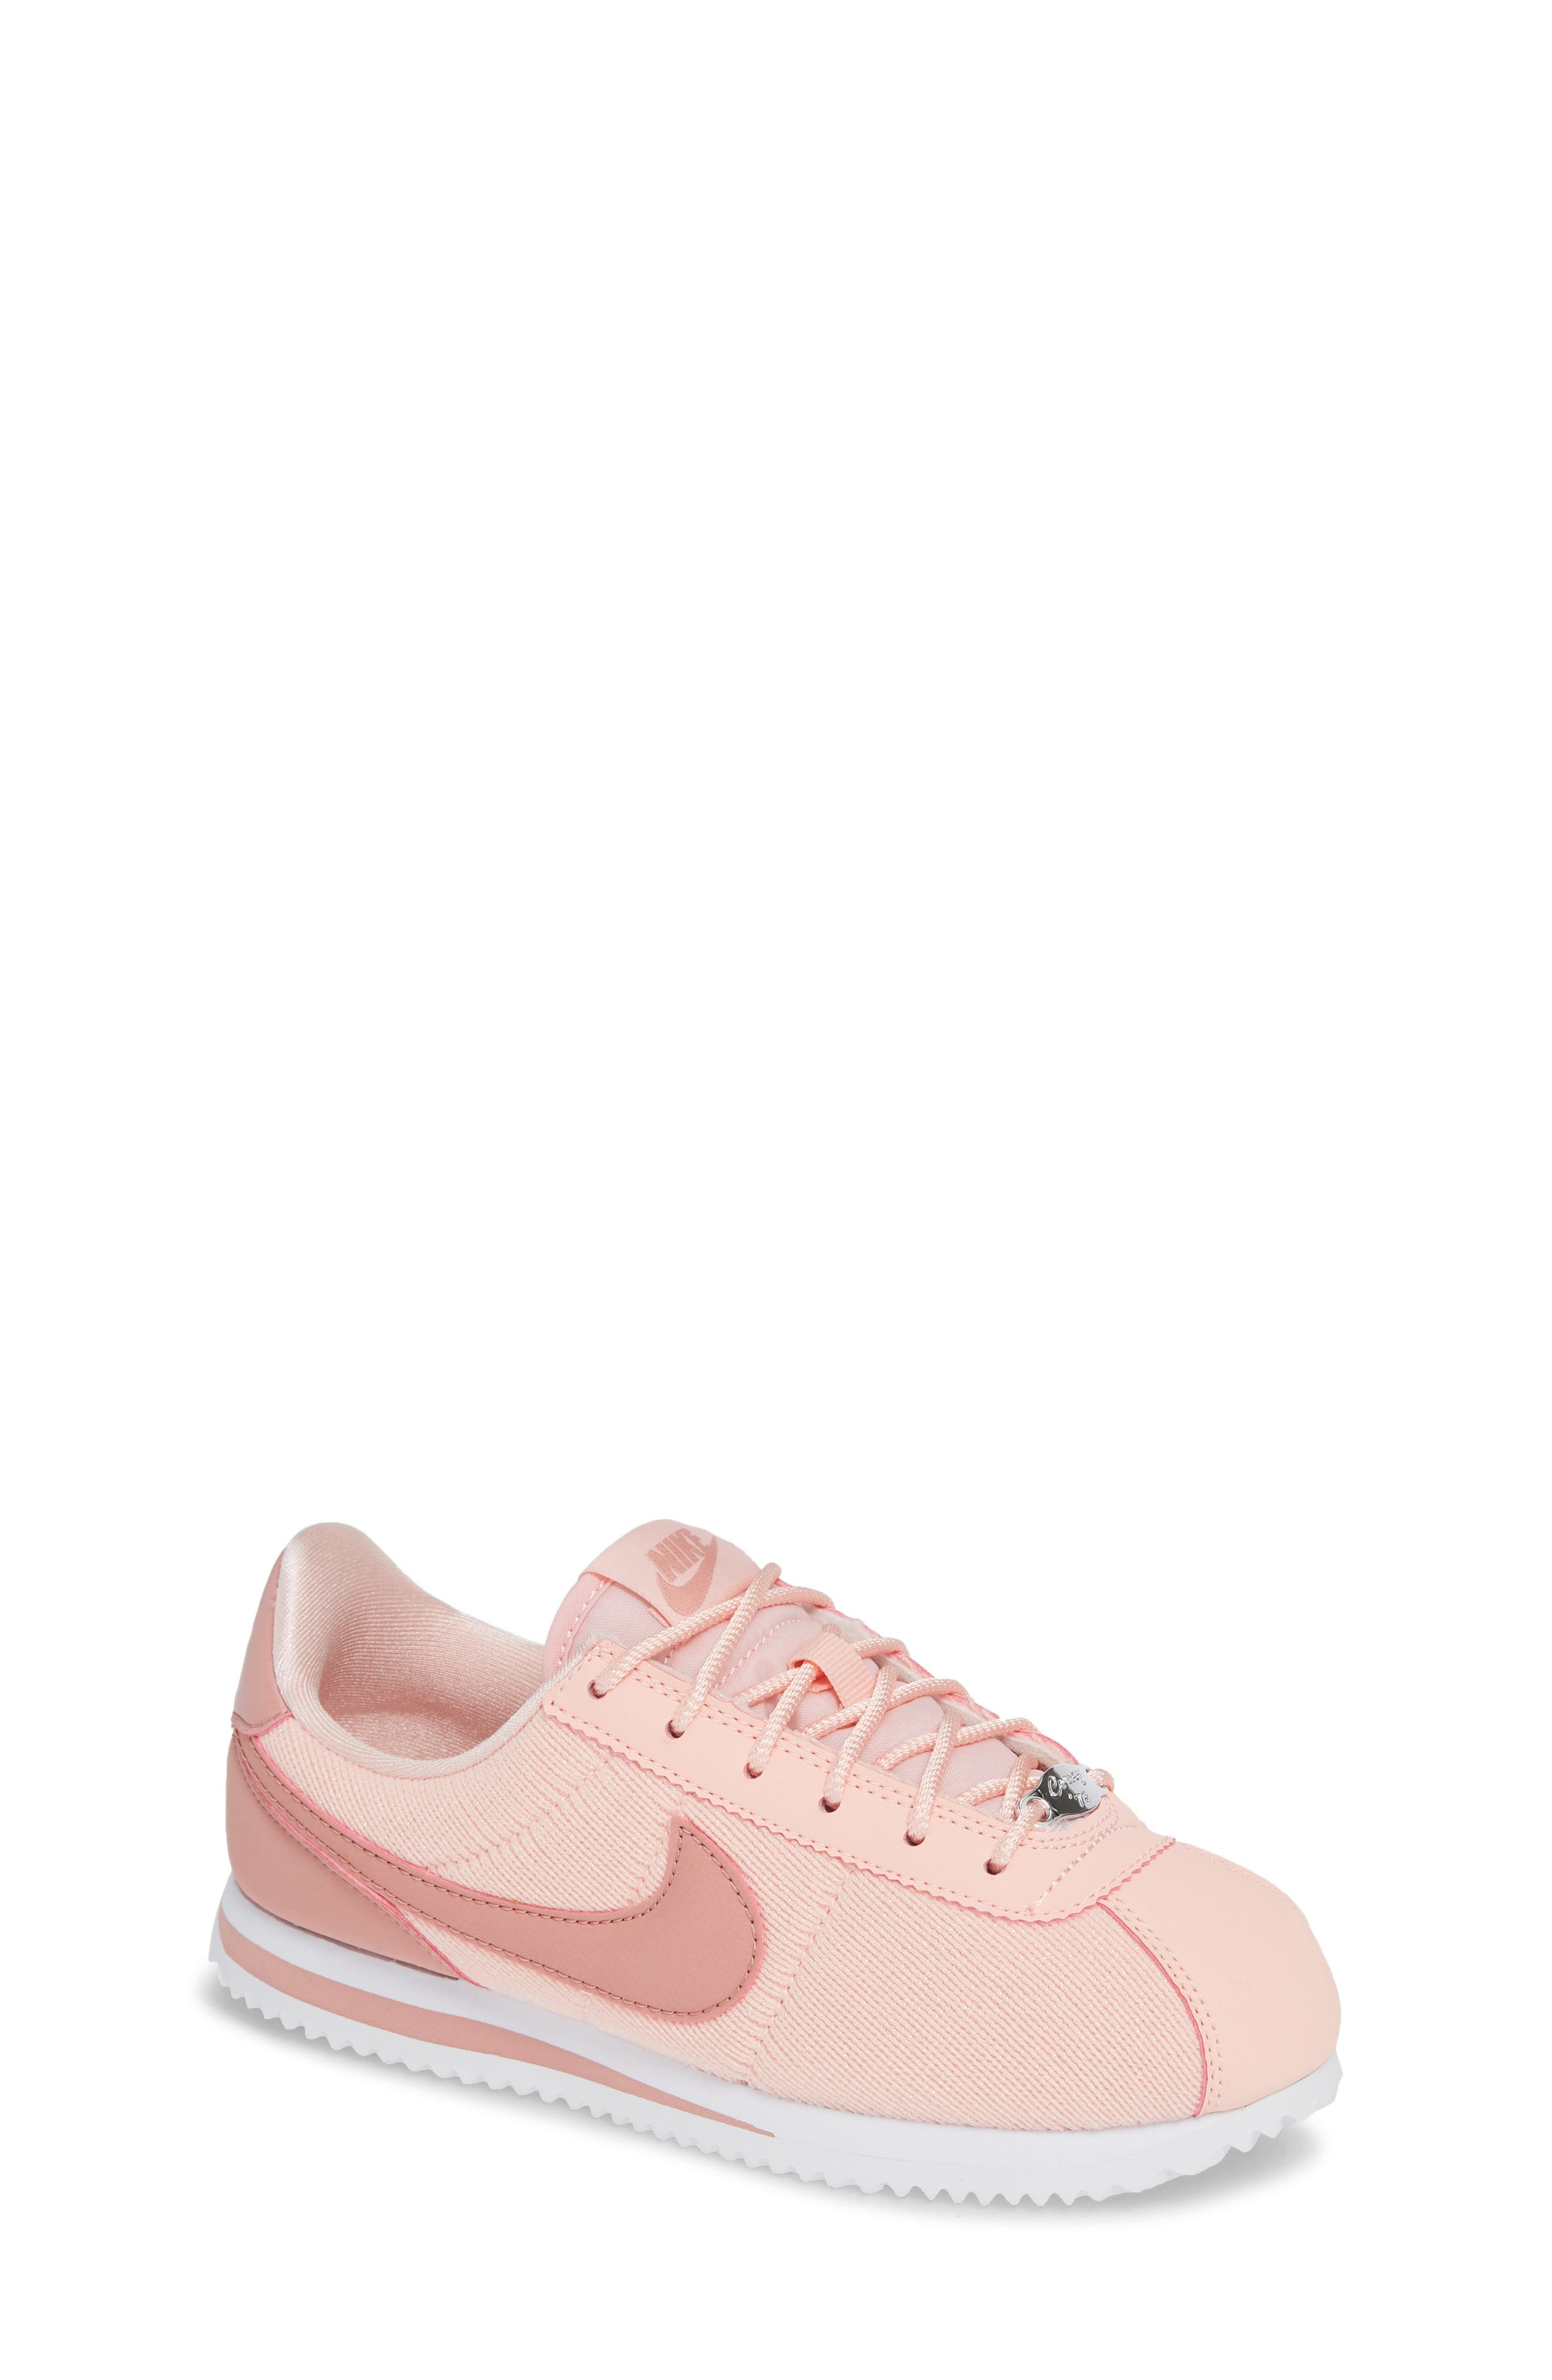 Cortez Basic TXT SE Sneaker,                         Main,                         color, STORM PINK/ RUST PINK/ WHITE